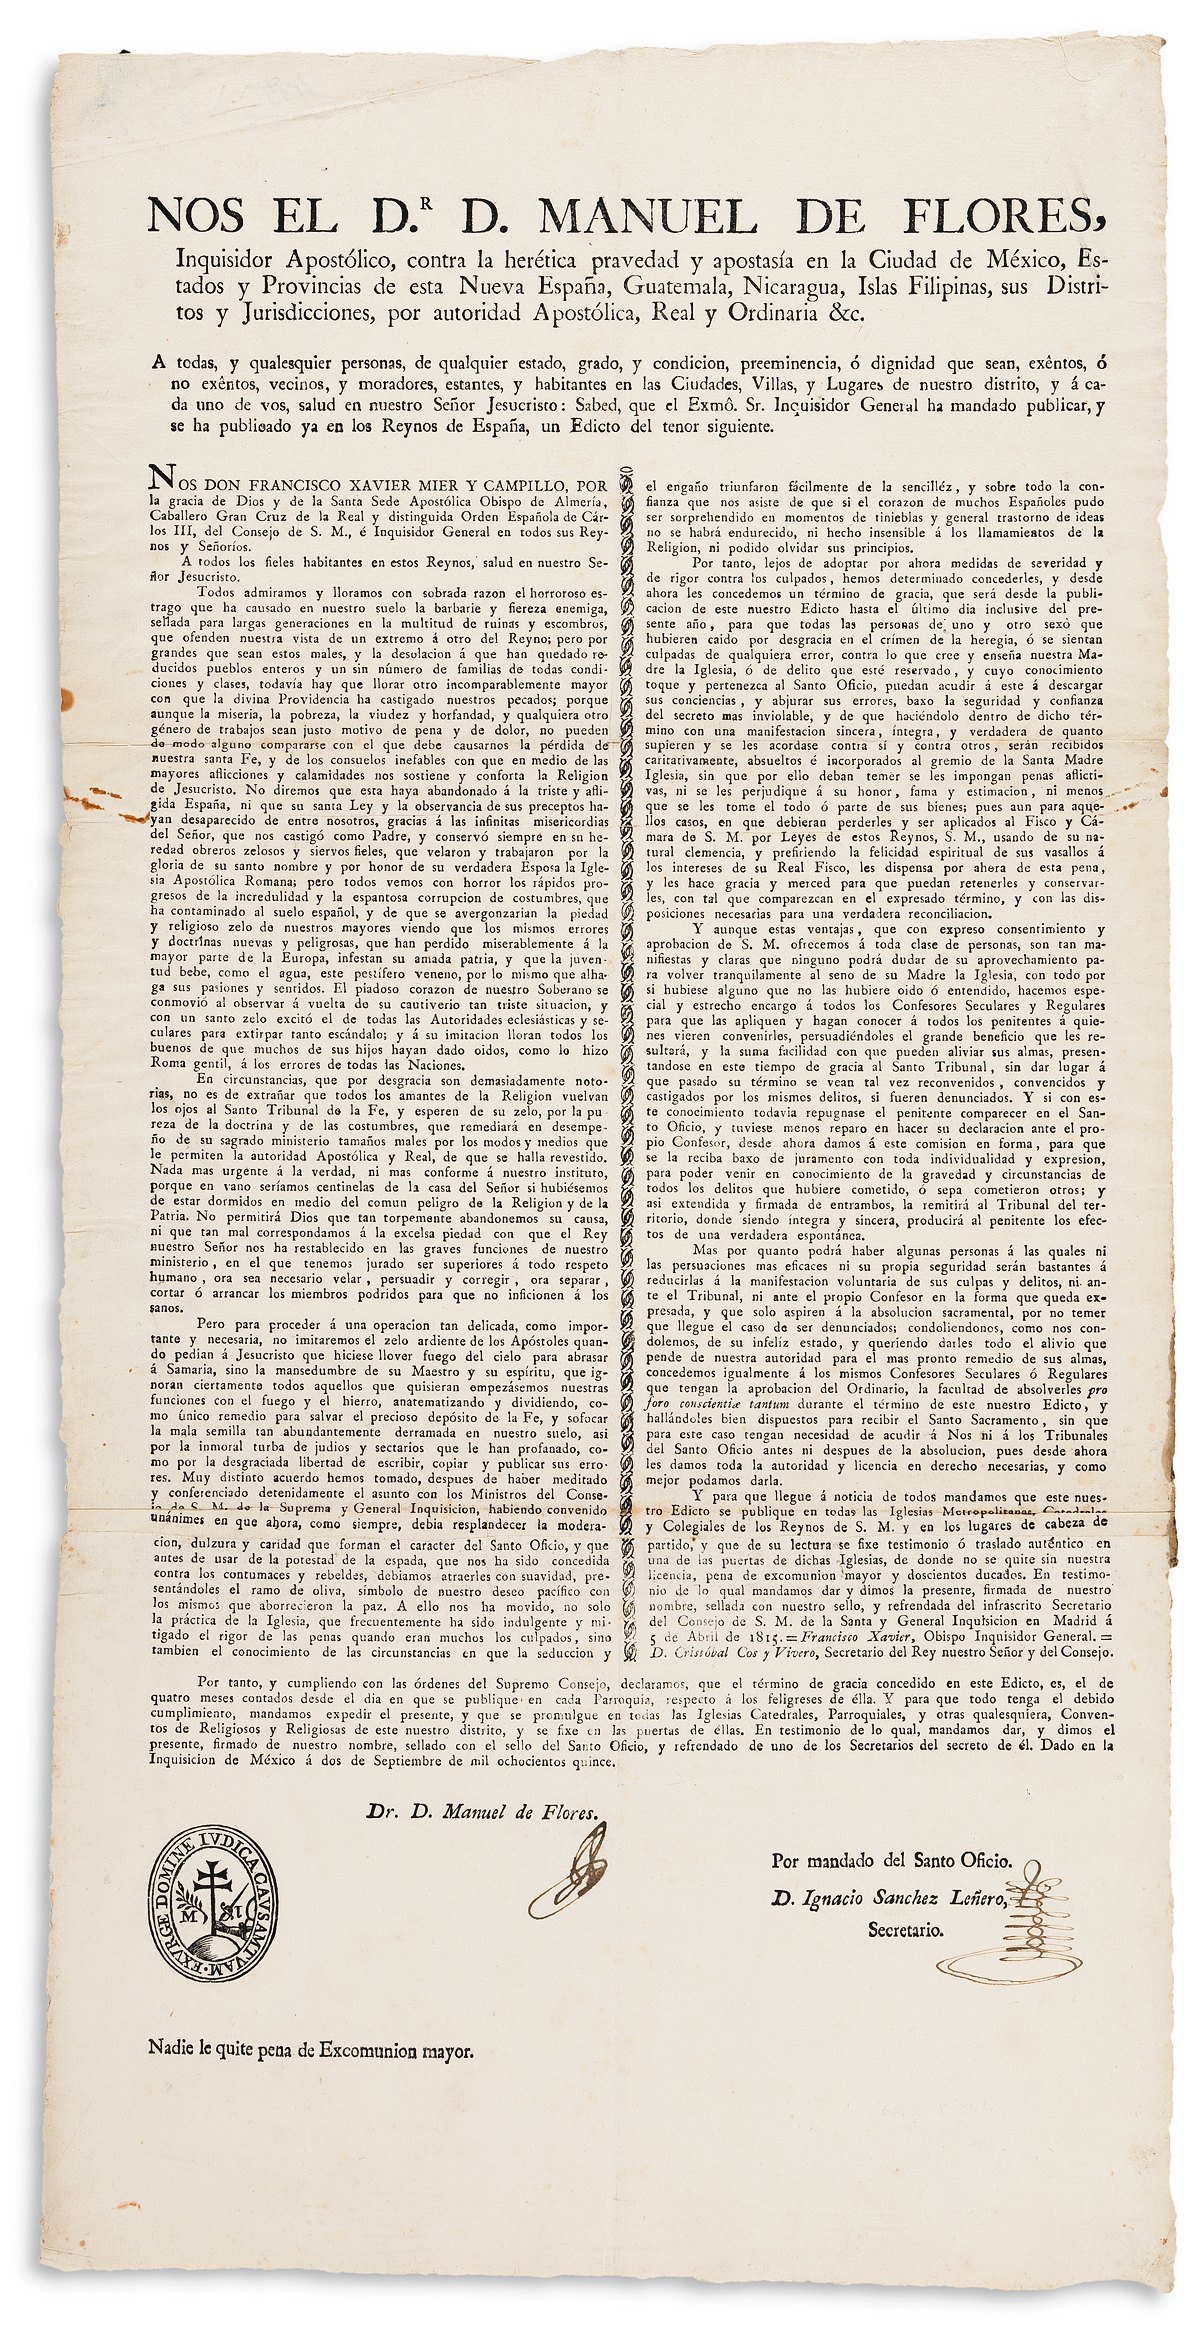 (MEXICAN IMPRINT--1815.) Manuel de Flores. Late colonial Inquisition broadside ordering the cessation of heretical opinions.